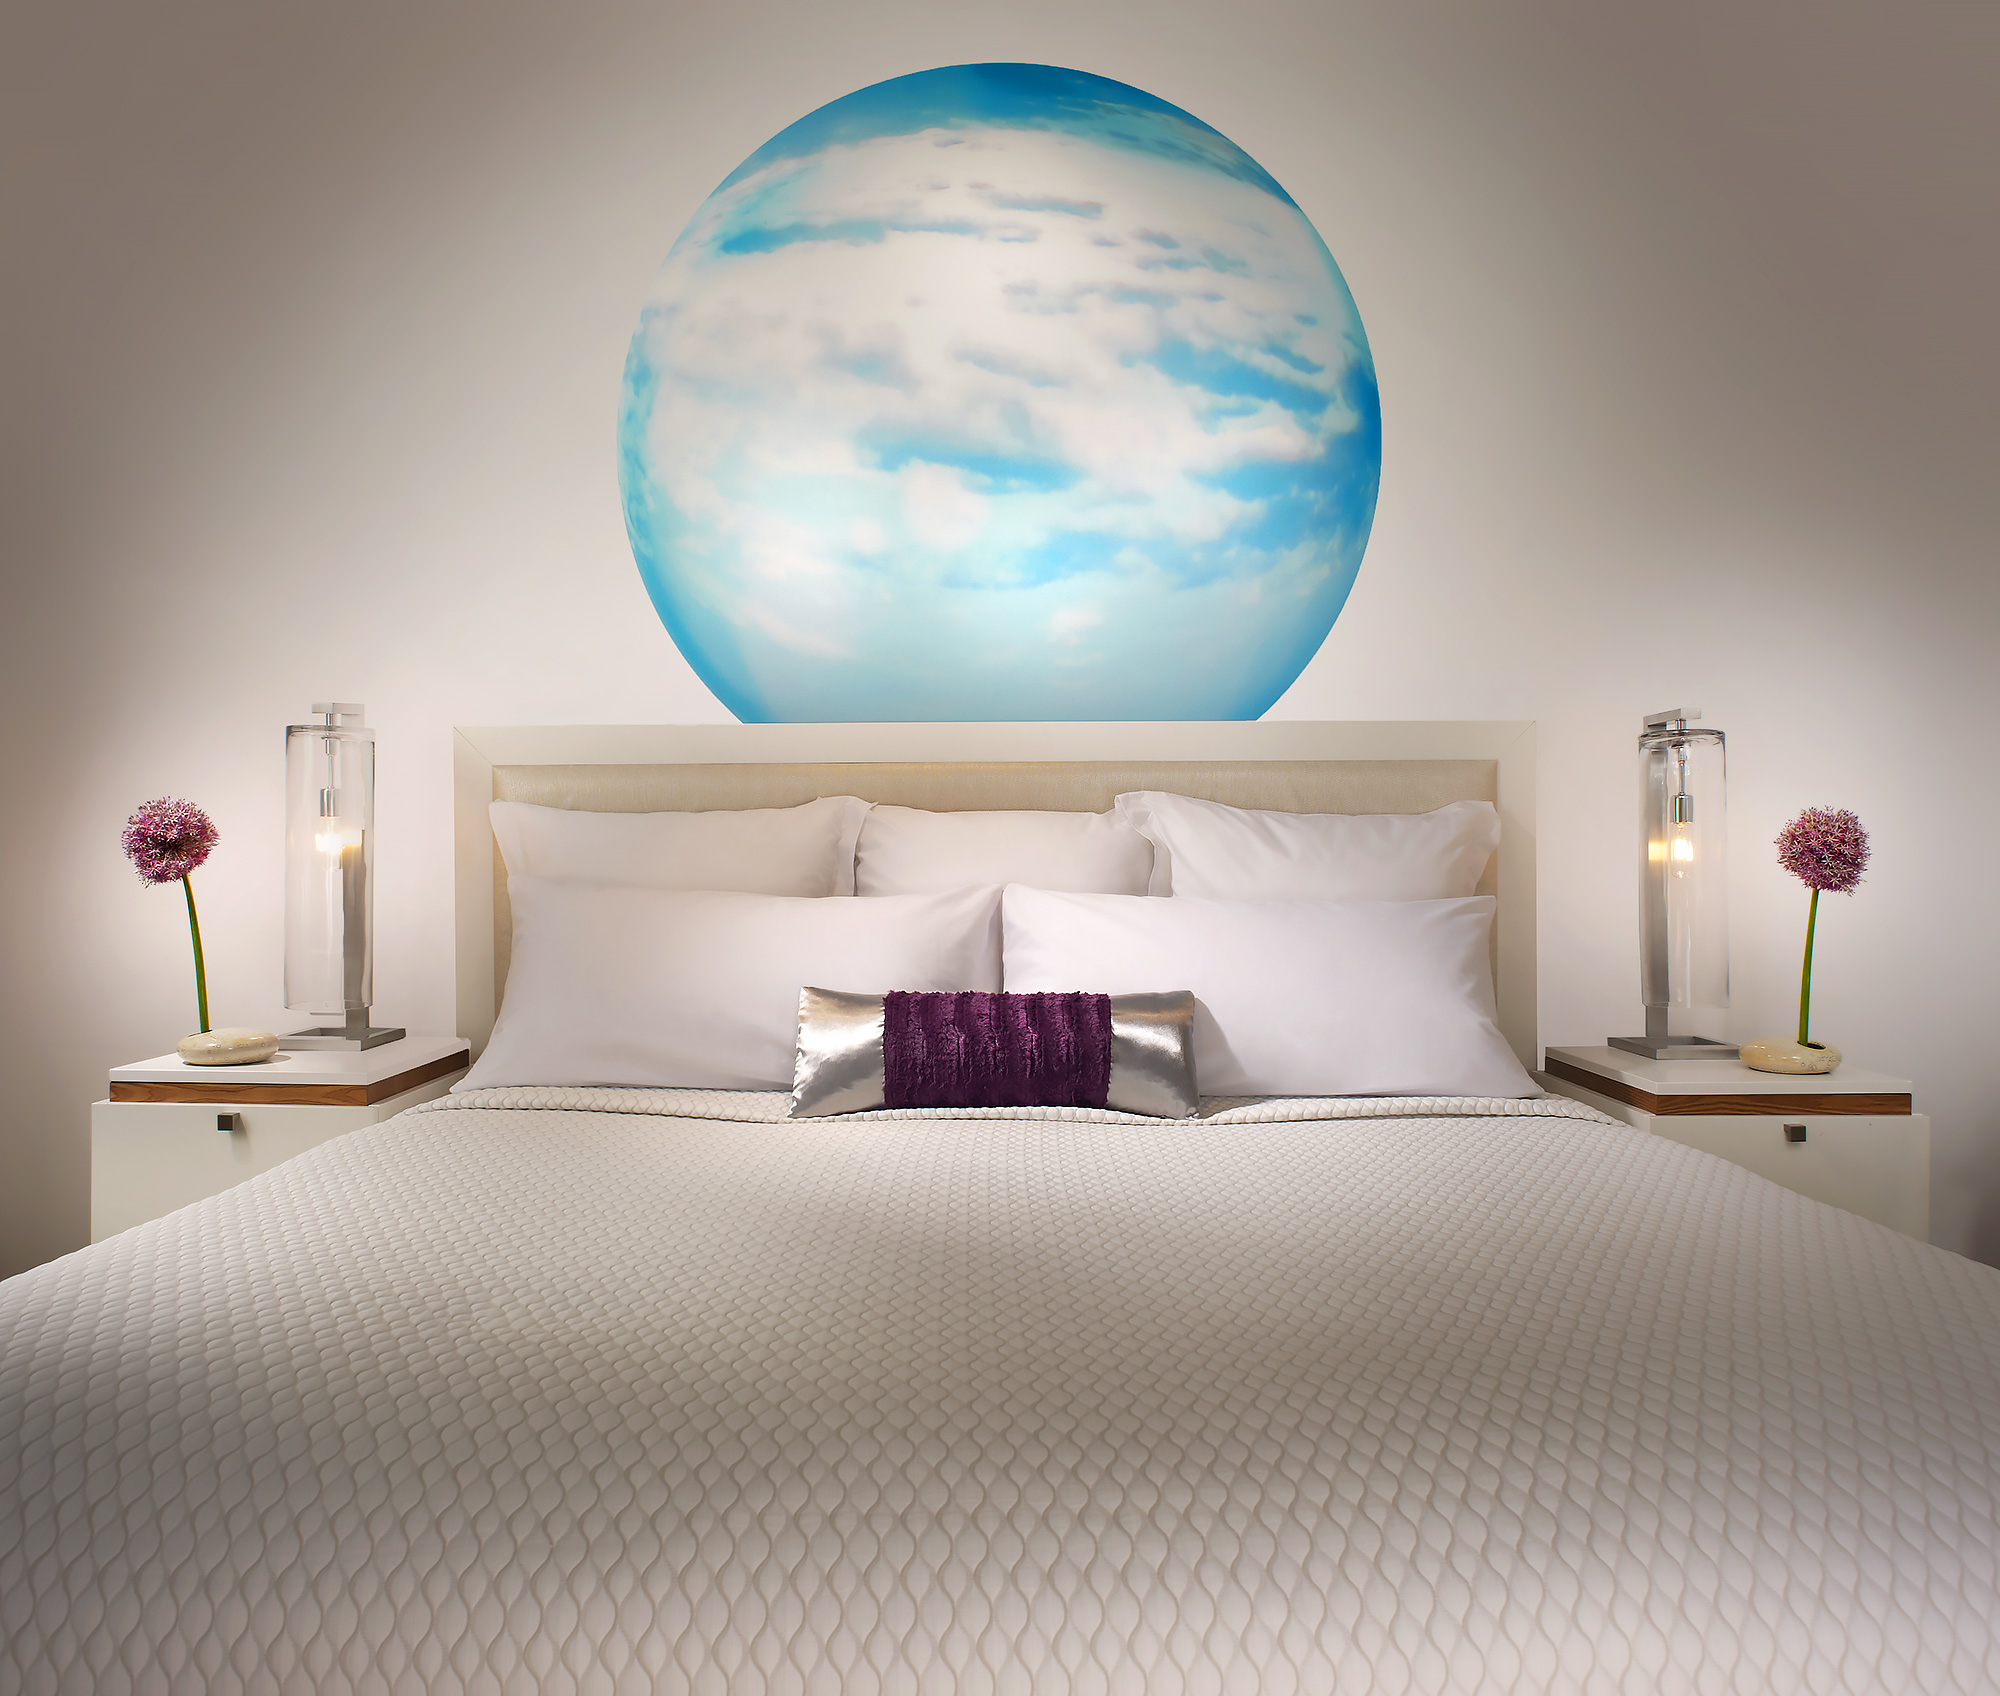 BlueMoon-Hotel-Marriott-Signature-Brand-Hotel-Miami-Beach